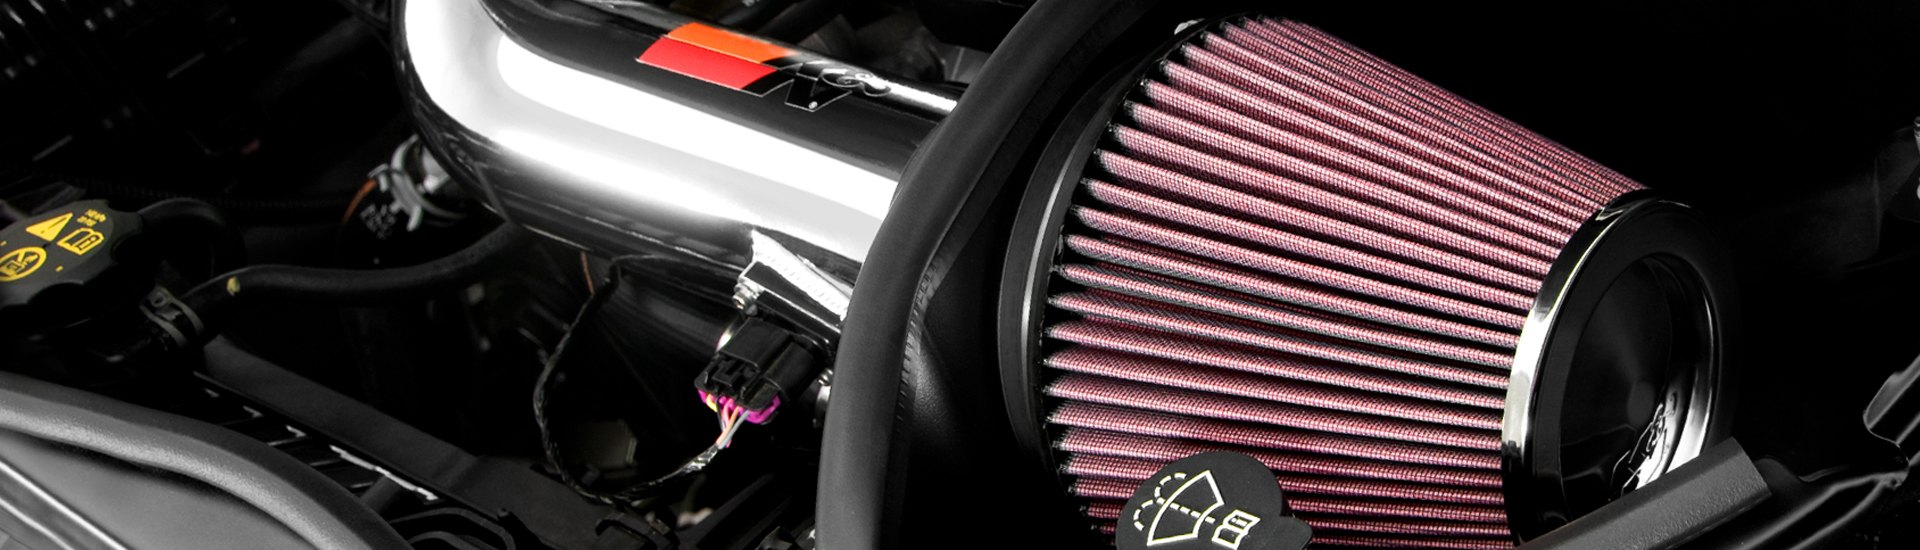 Performance Air Intake Systems | Cold Air, Filters, Manifolds, MAFs